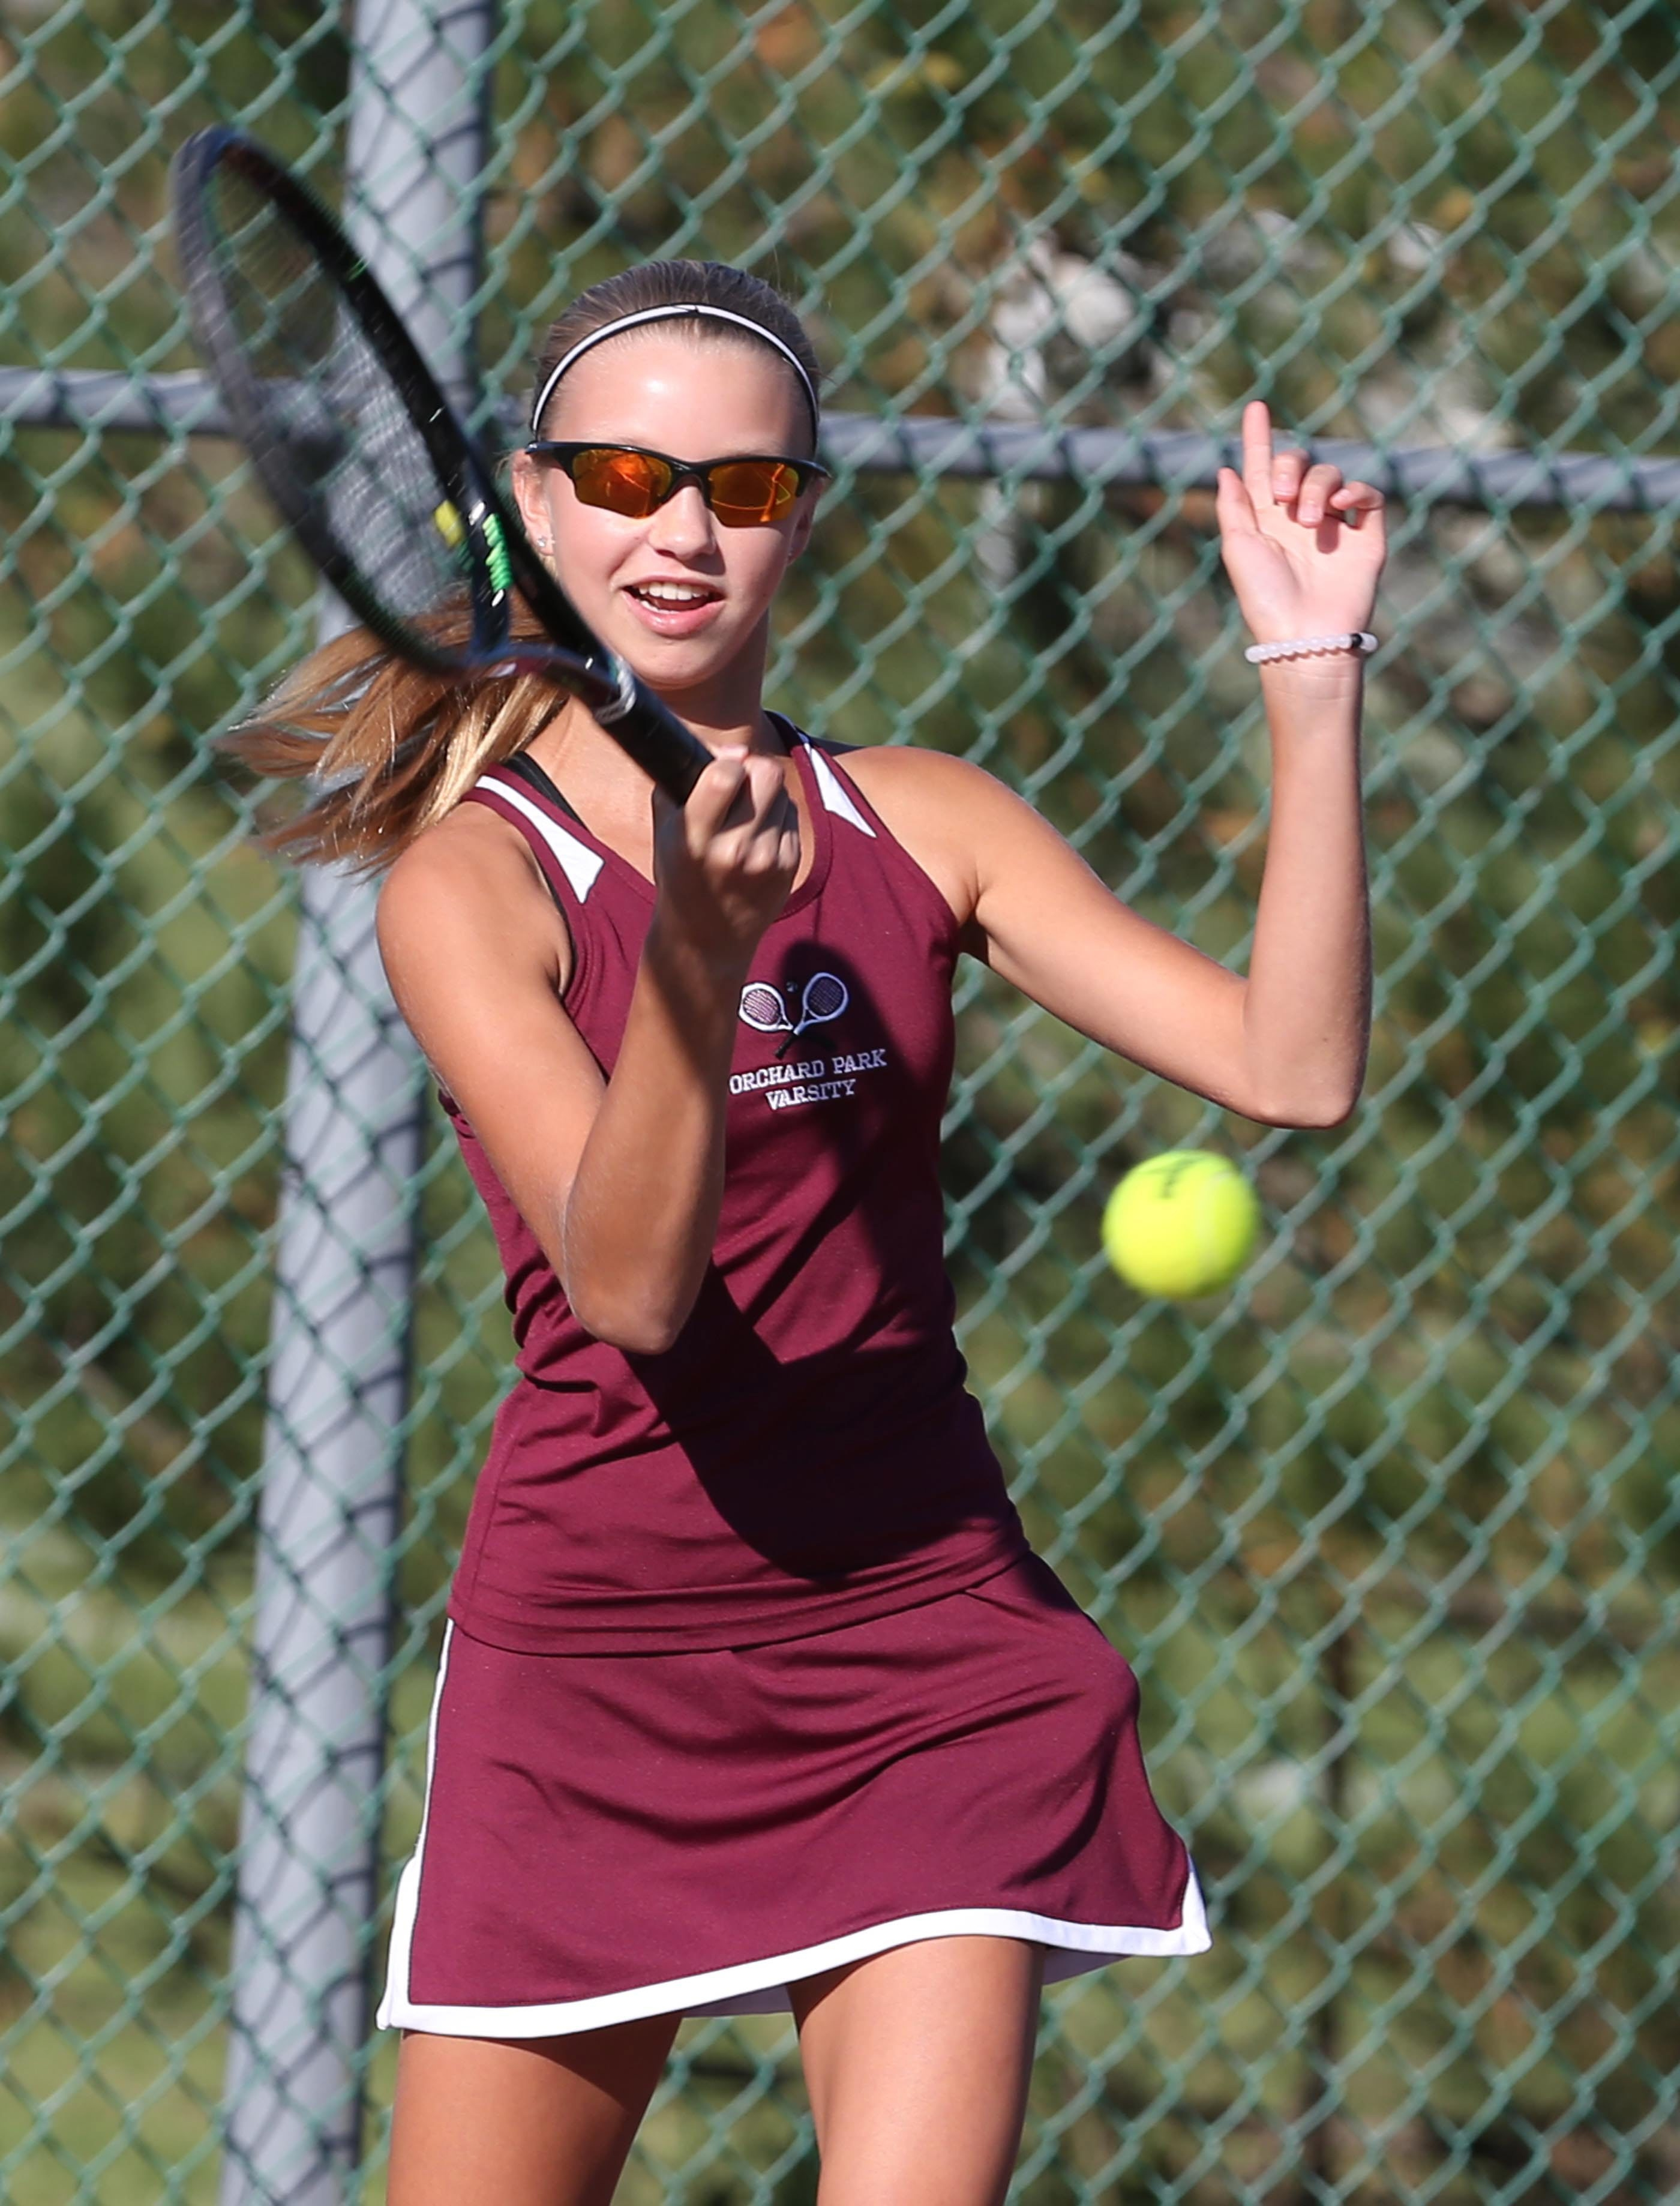 Orchard Park's first singles player, Jesse Hollins, hits the ball at West Seneca West.